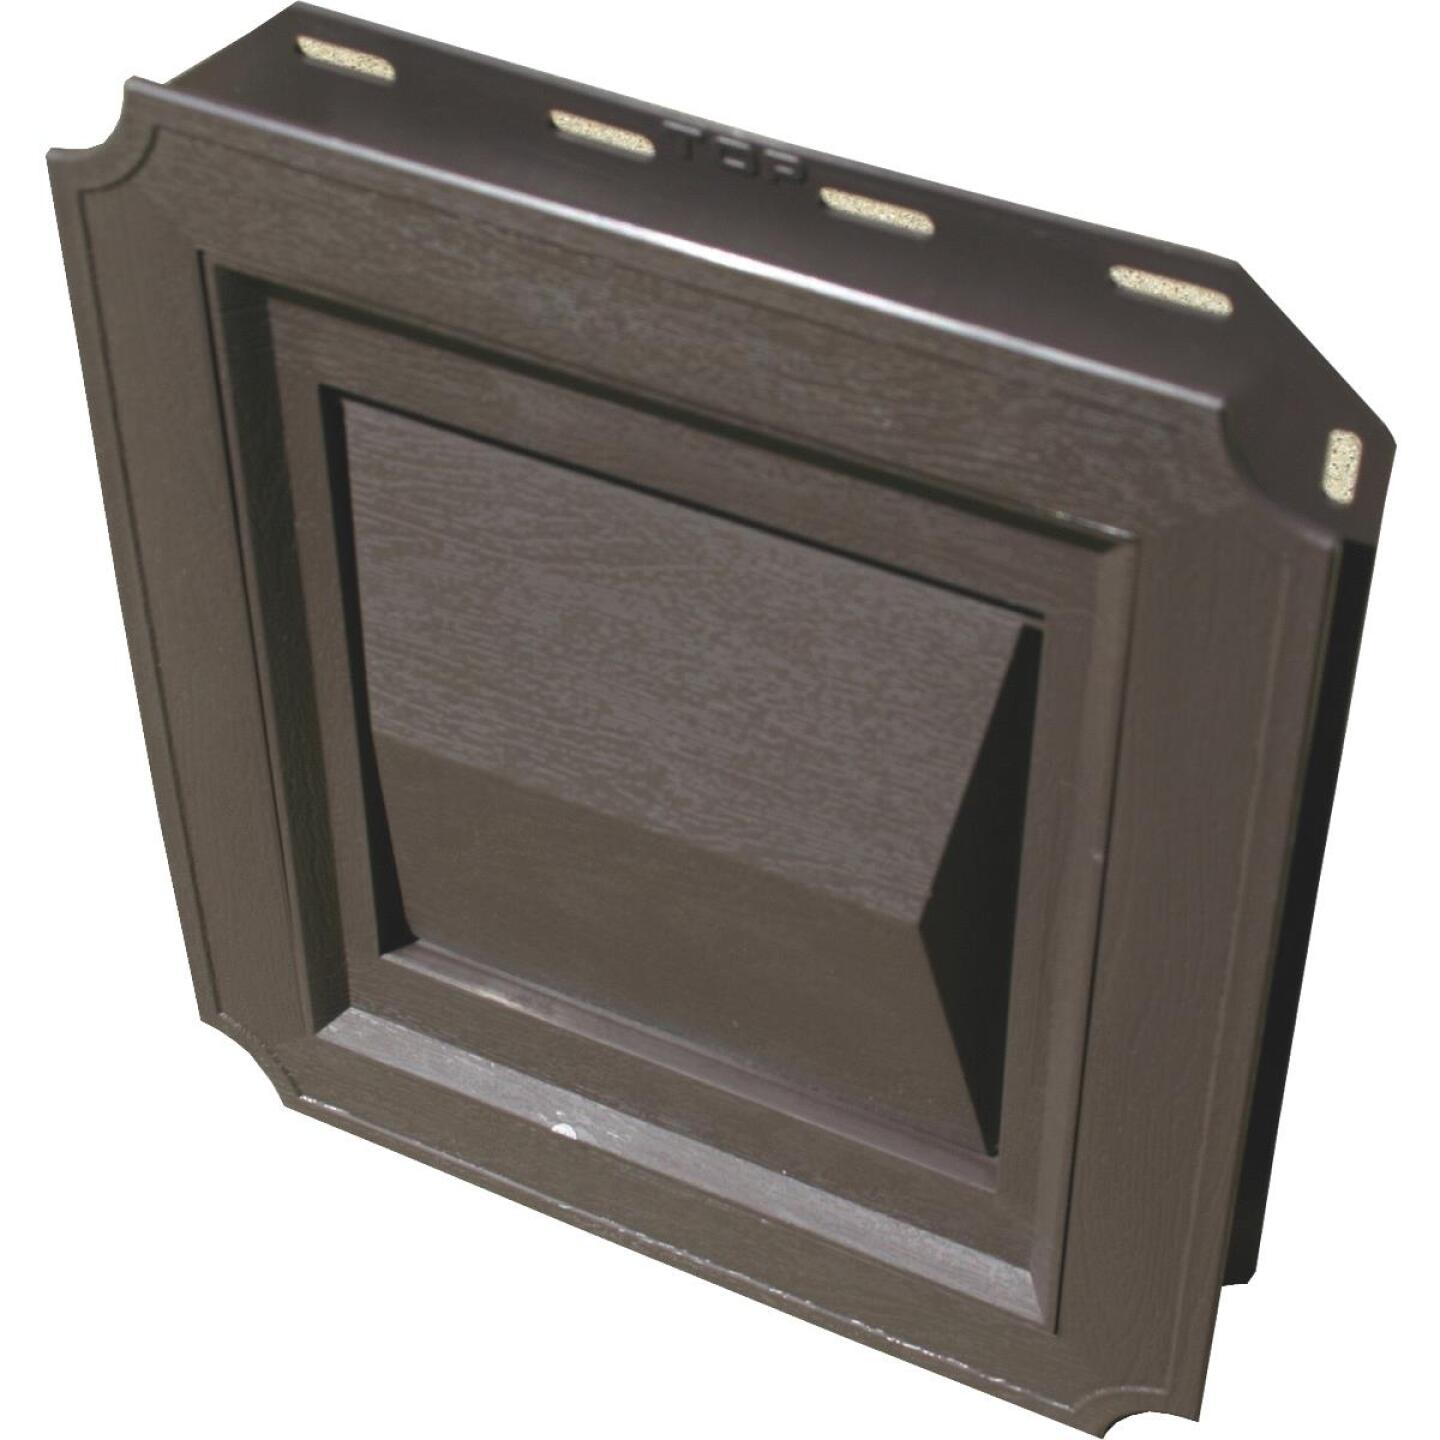 Builder's Best 4 In. Brown Plastic J-Block Dryer Vent Hood Image 1